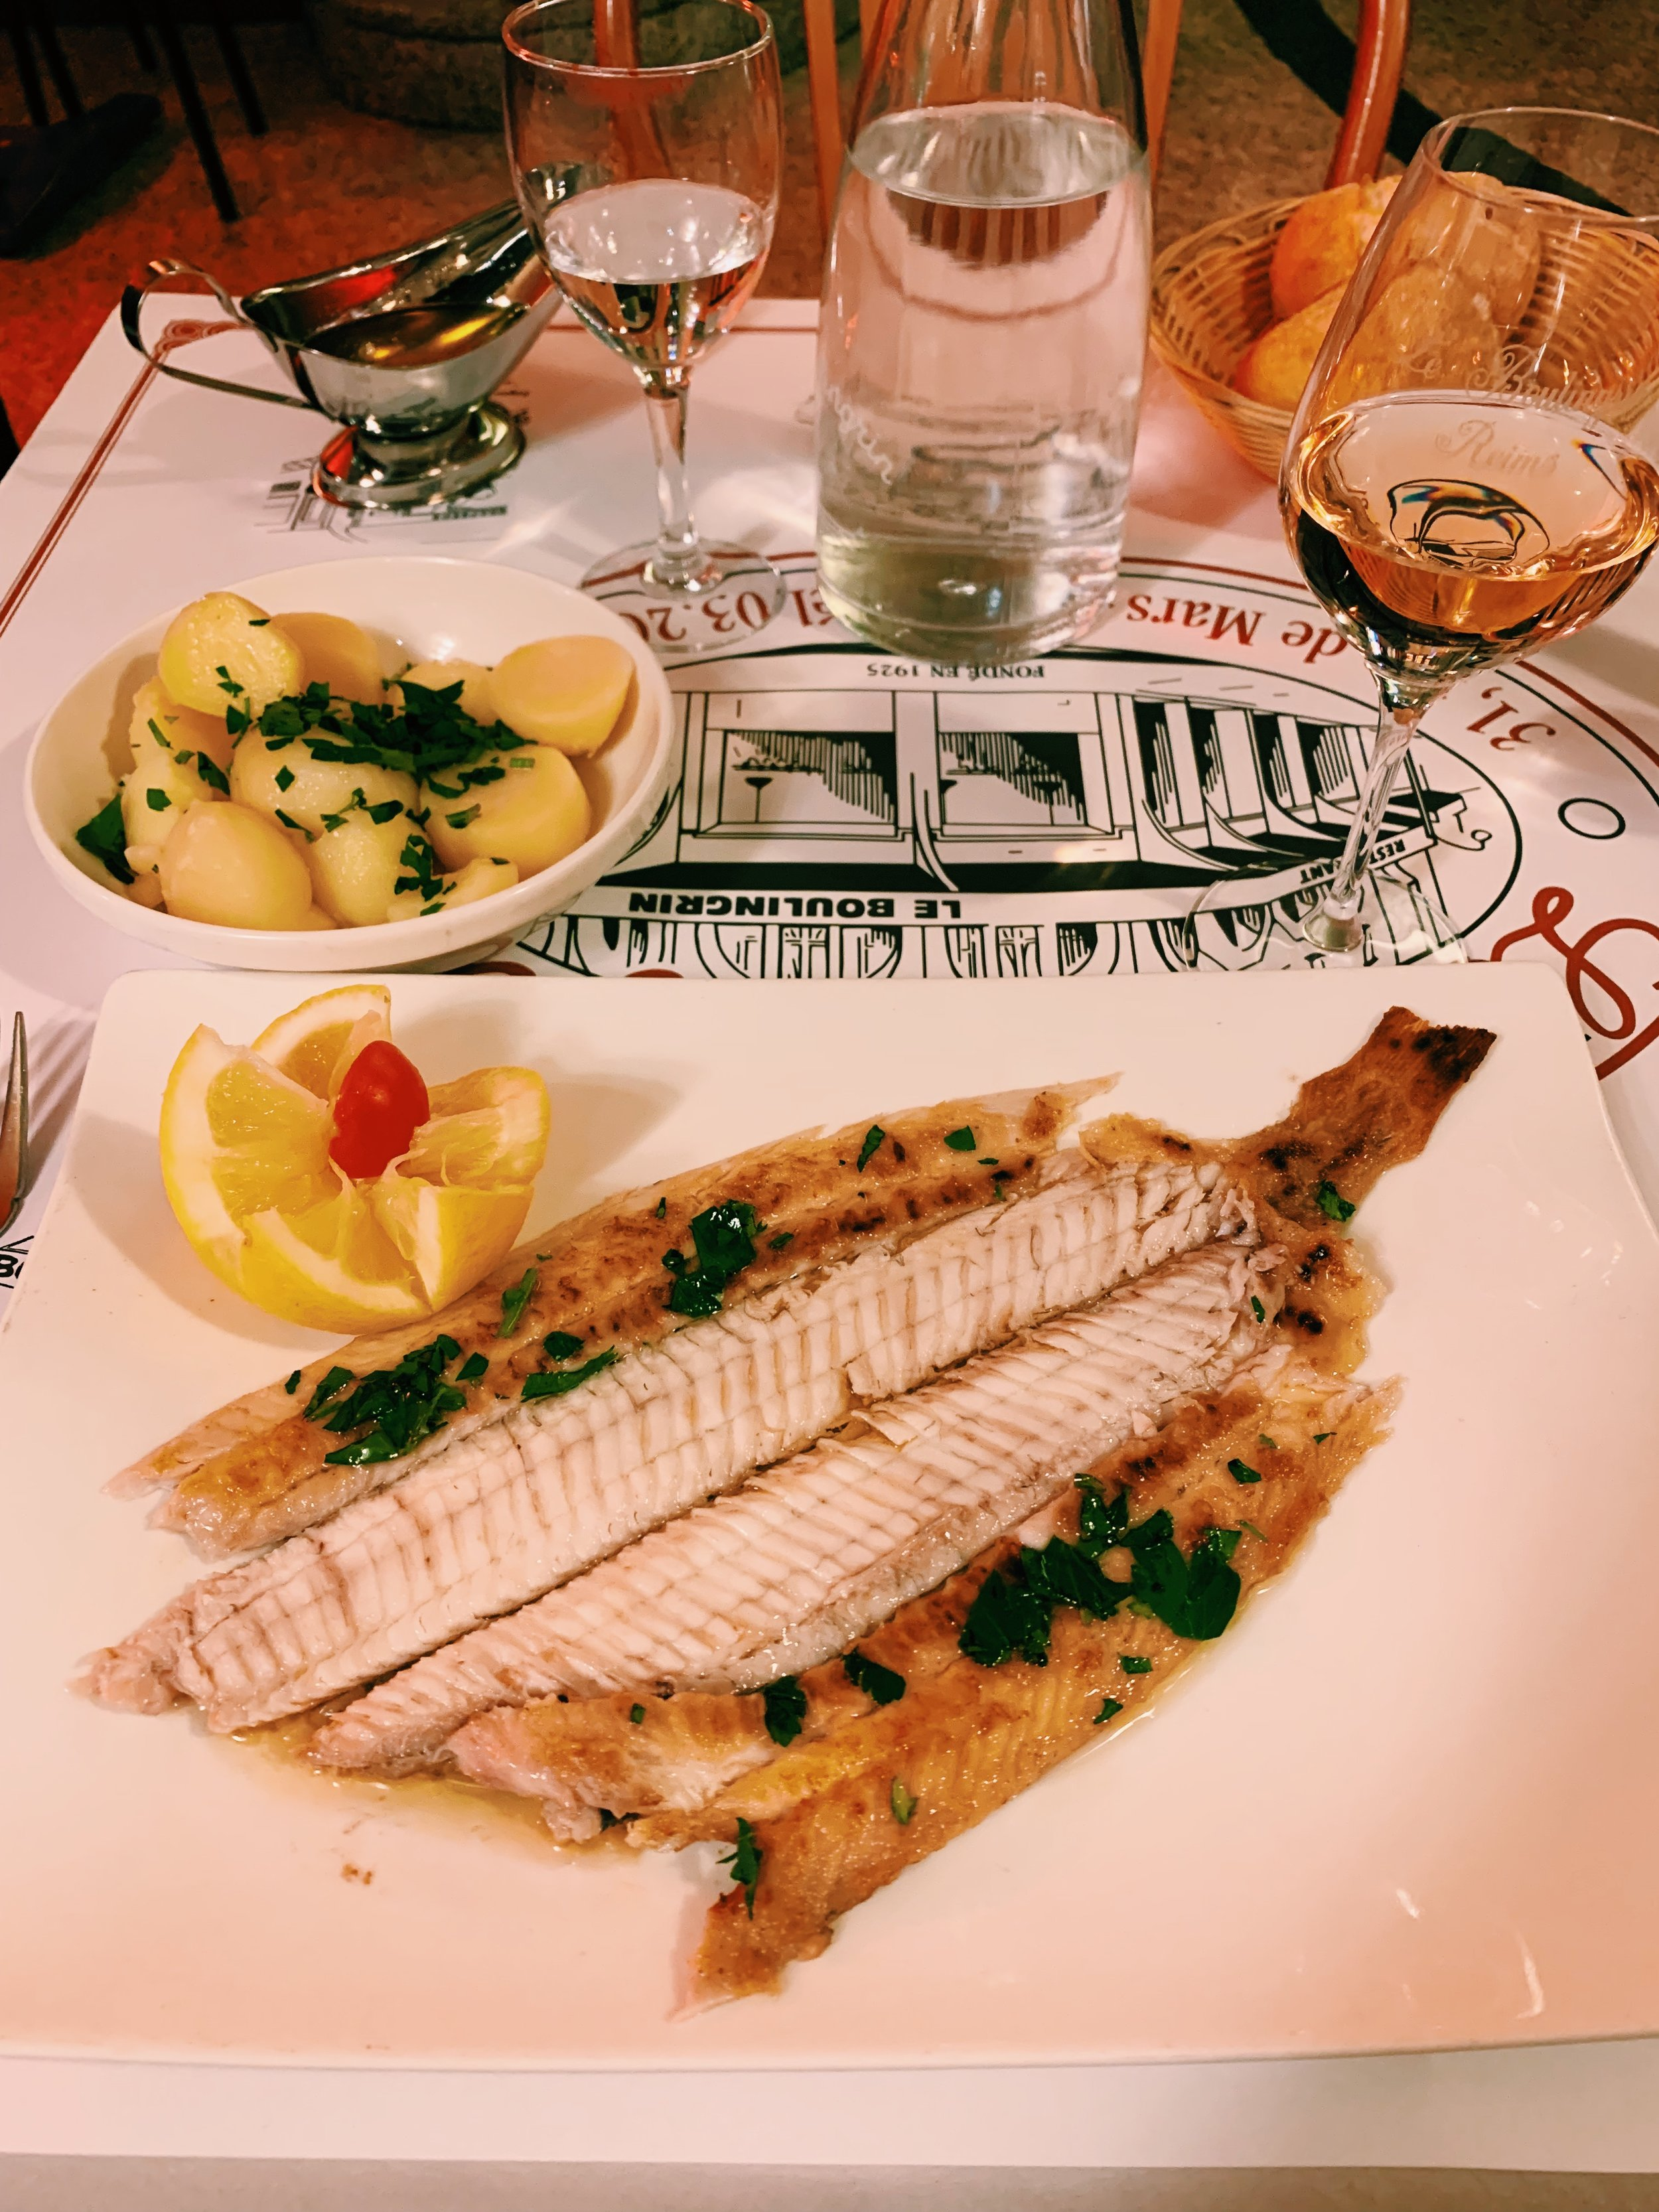 sole meunier at a brasserie with potatoes and a glass of rose champagne